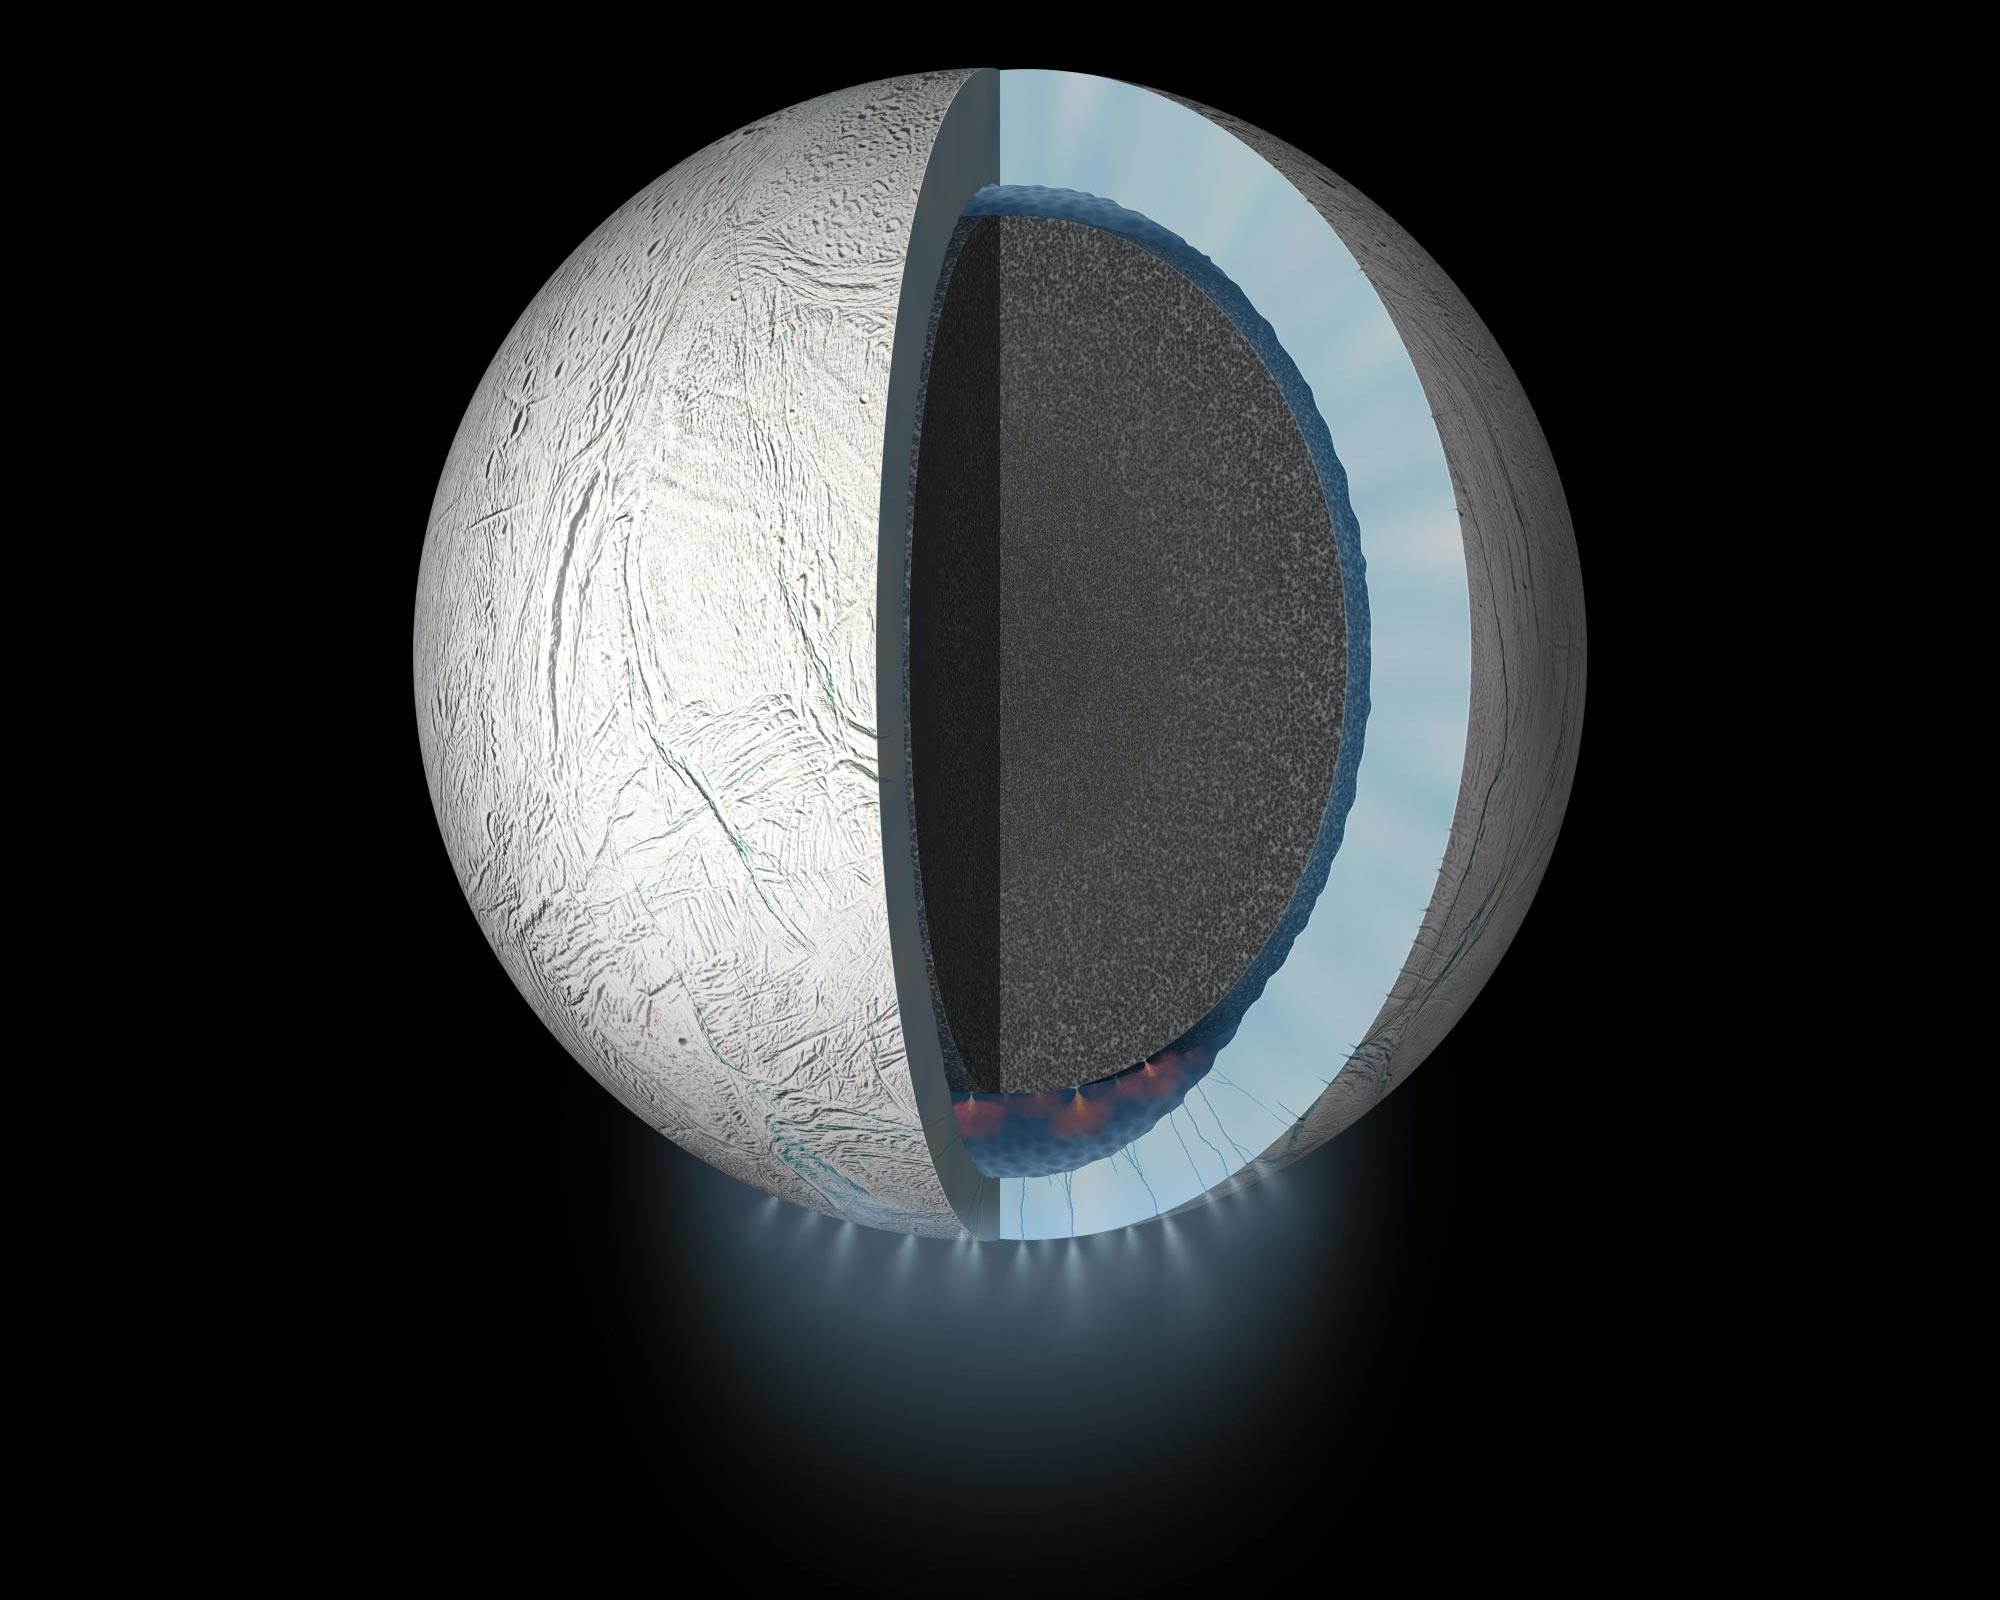 Inner Complexity of Saturn's Moon Enceladus Revealed – Hints at Habitable Conditions - SciTechDaily